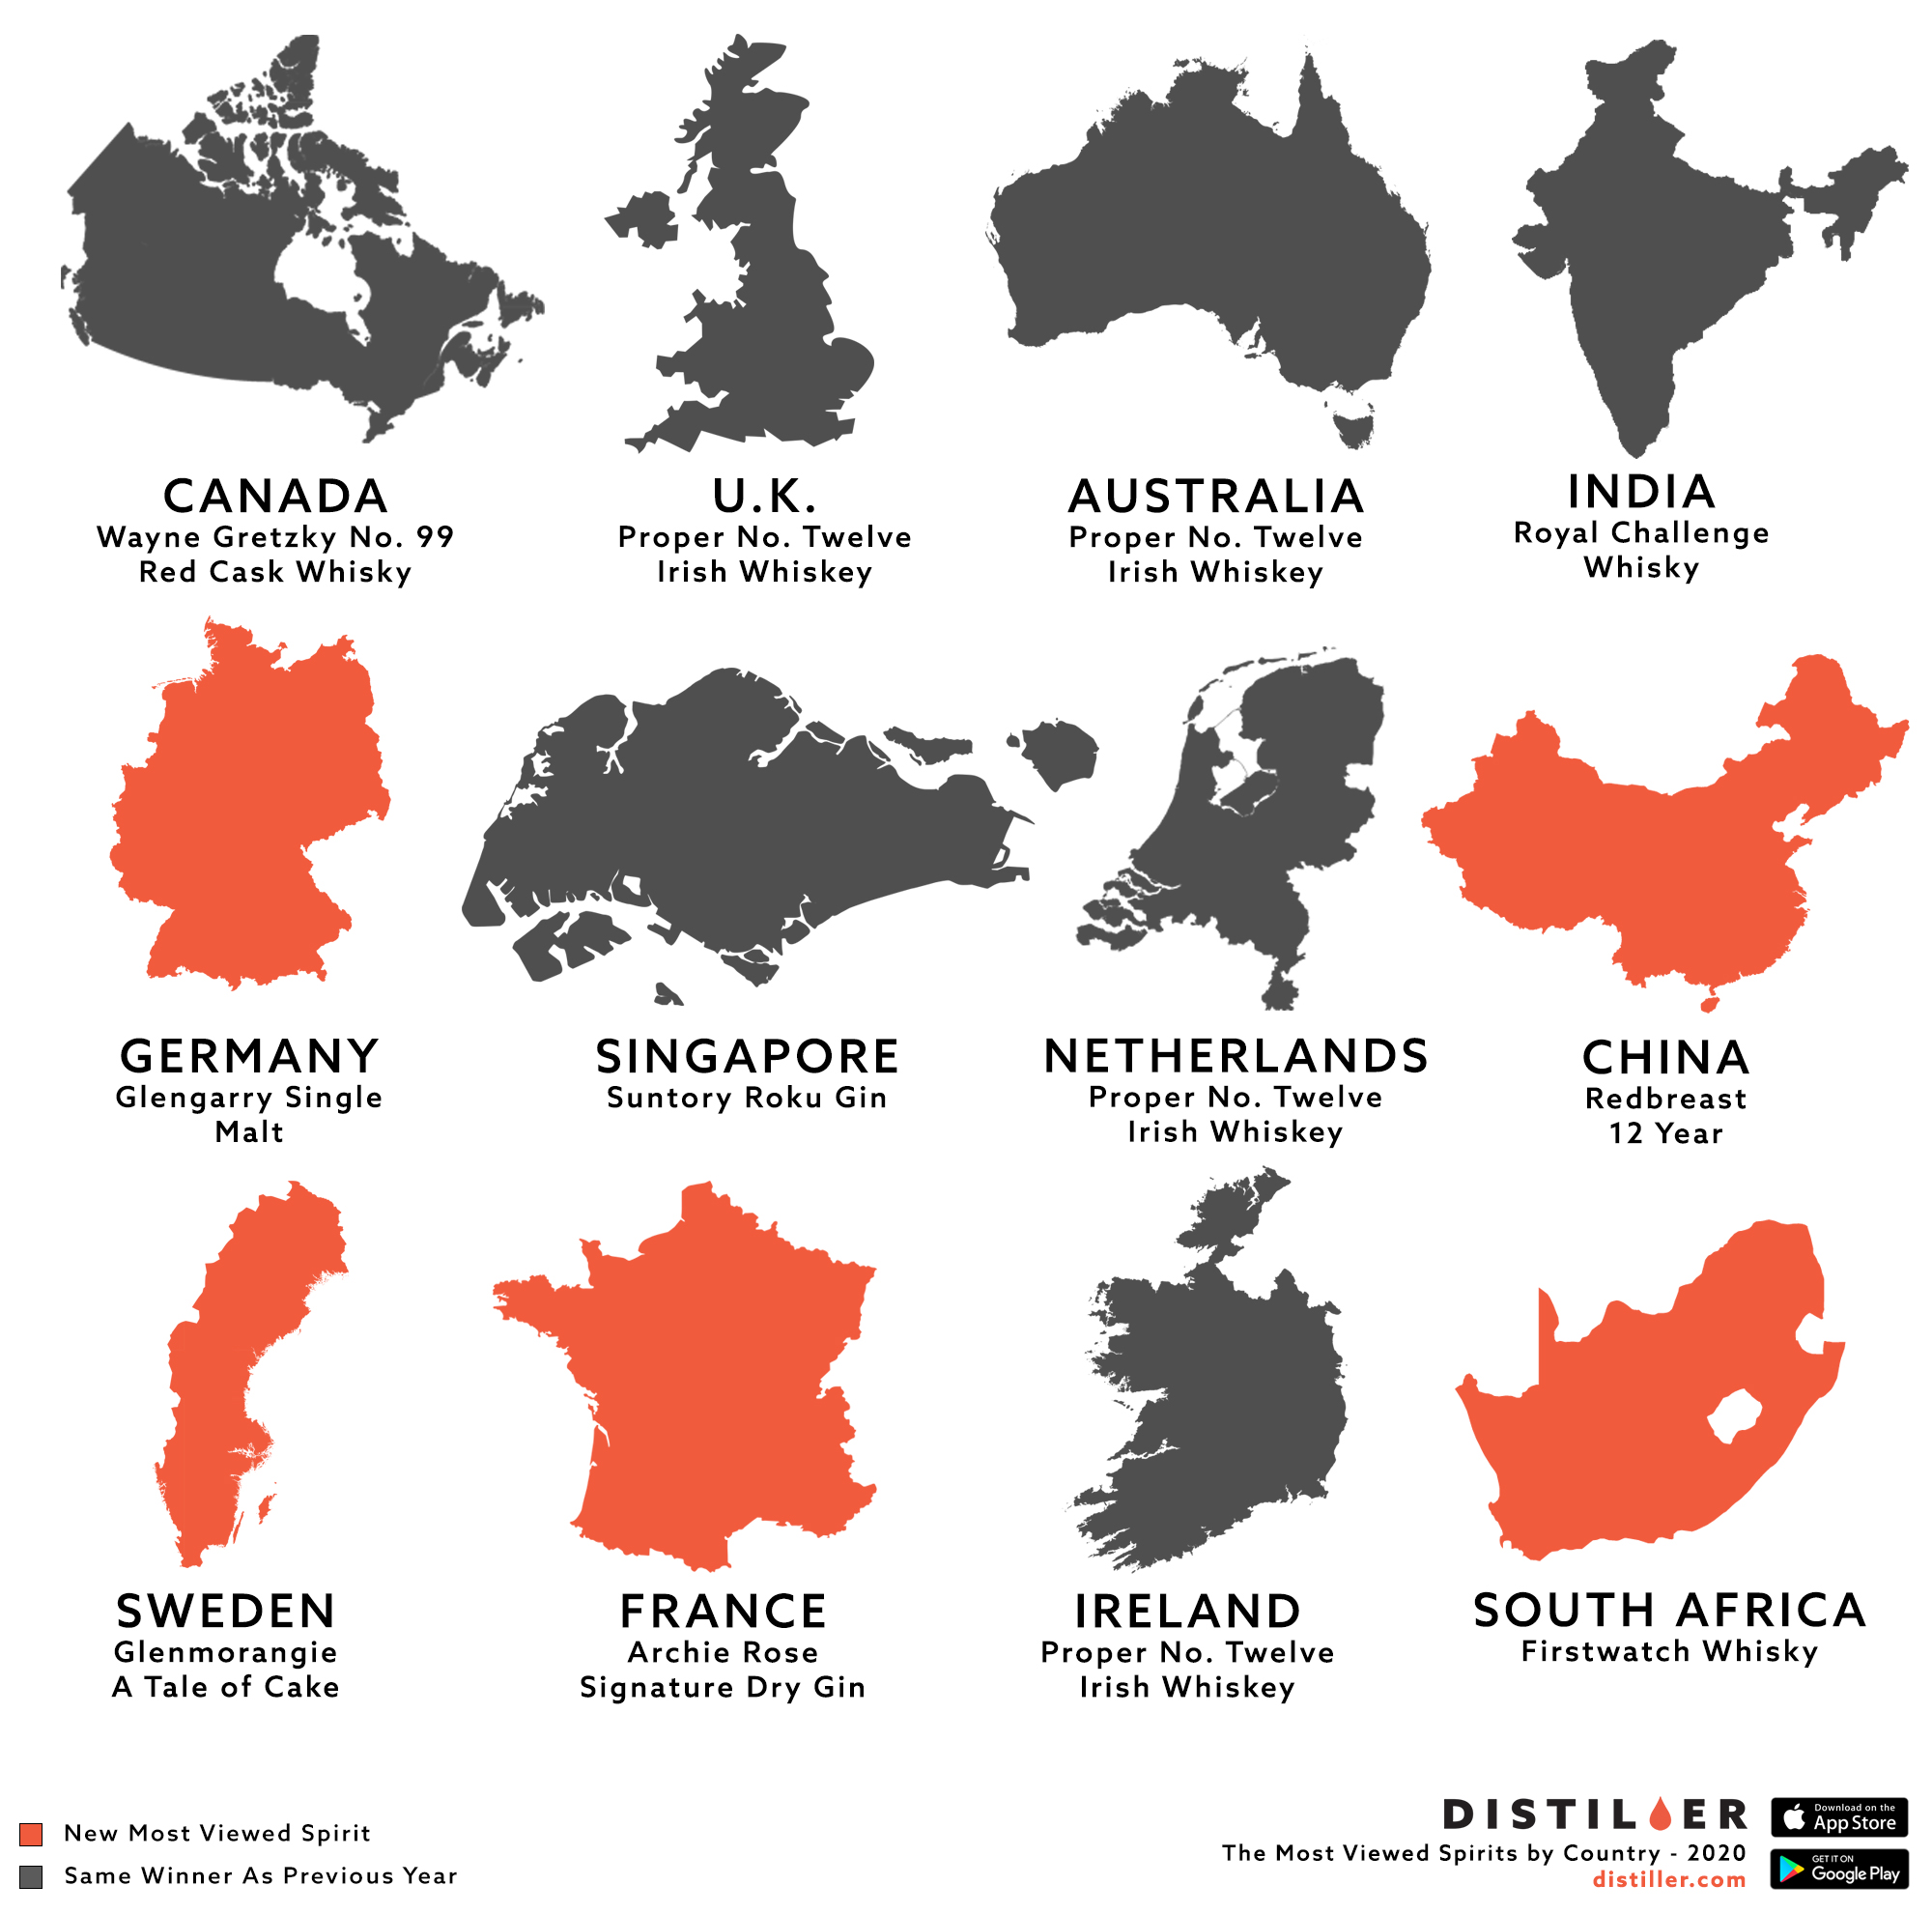 Distiller in 2020: The Top Spirits By Country